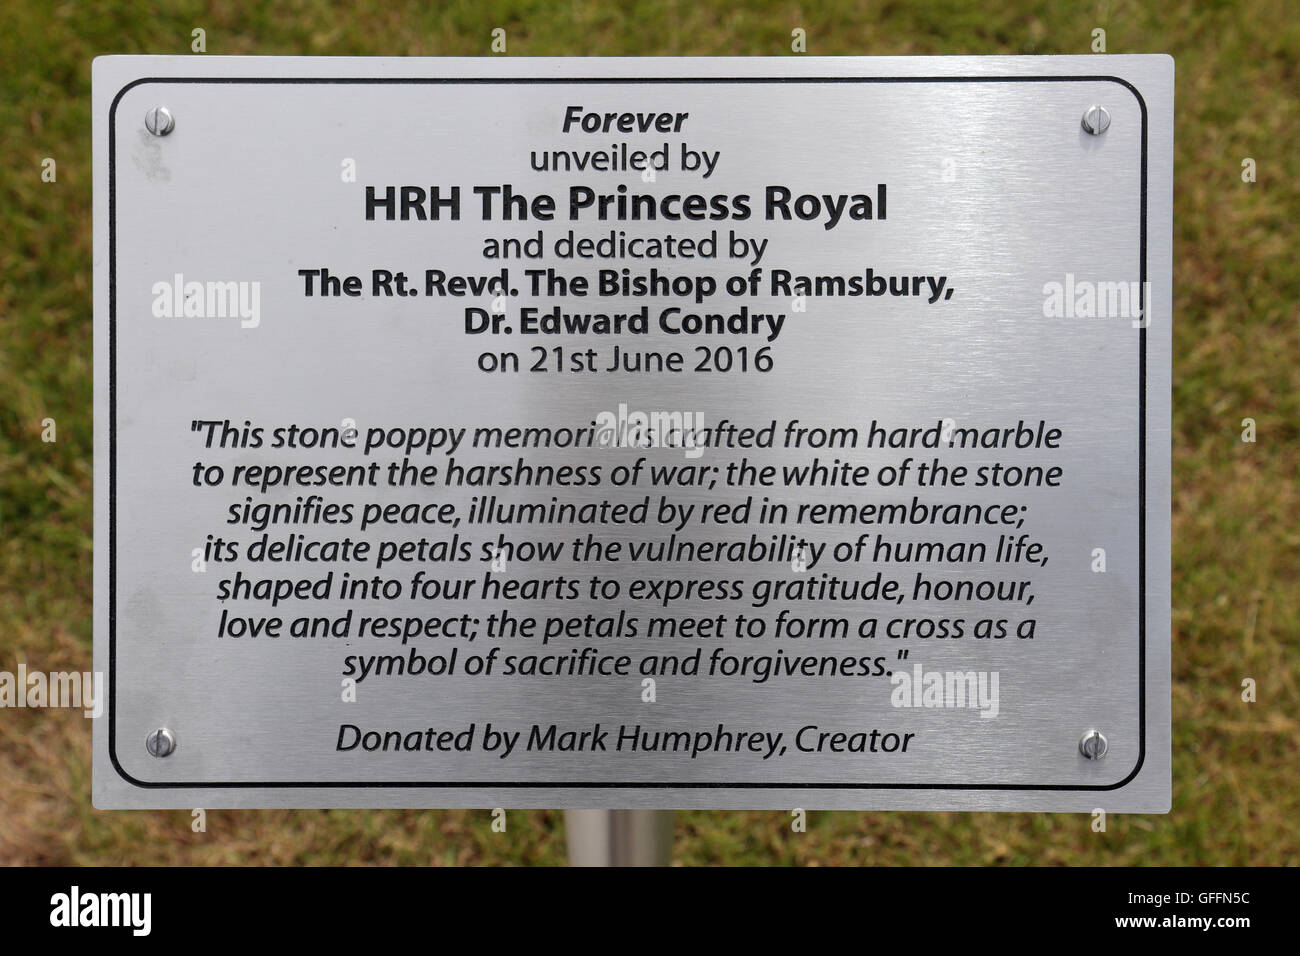 Memorial plaque beside the 'Forever' stone poppy memorial in Royal Wootton Bassett, Wiltshire, UK. Stock Photo